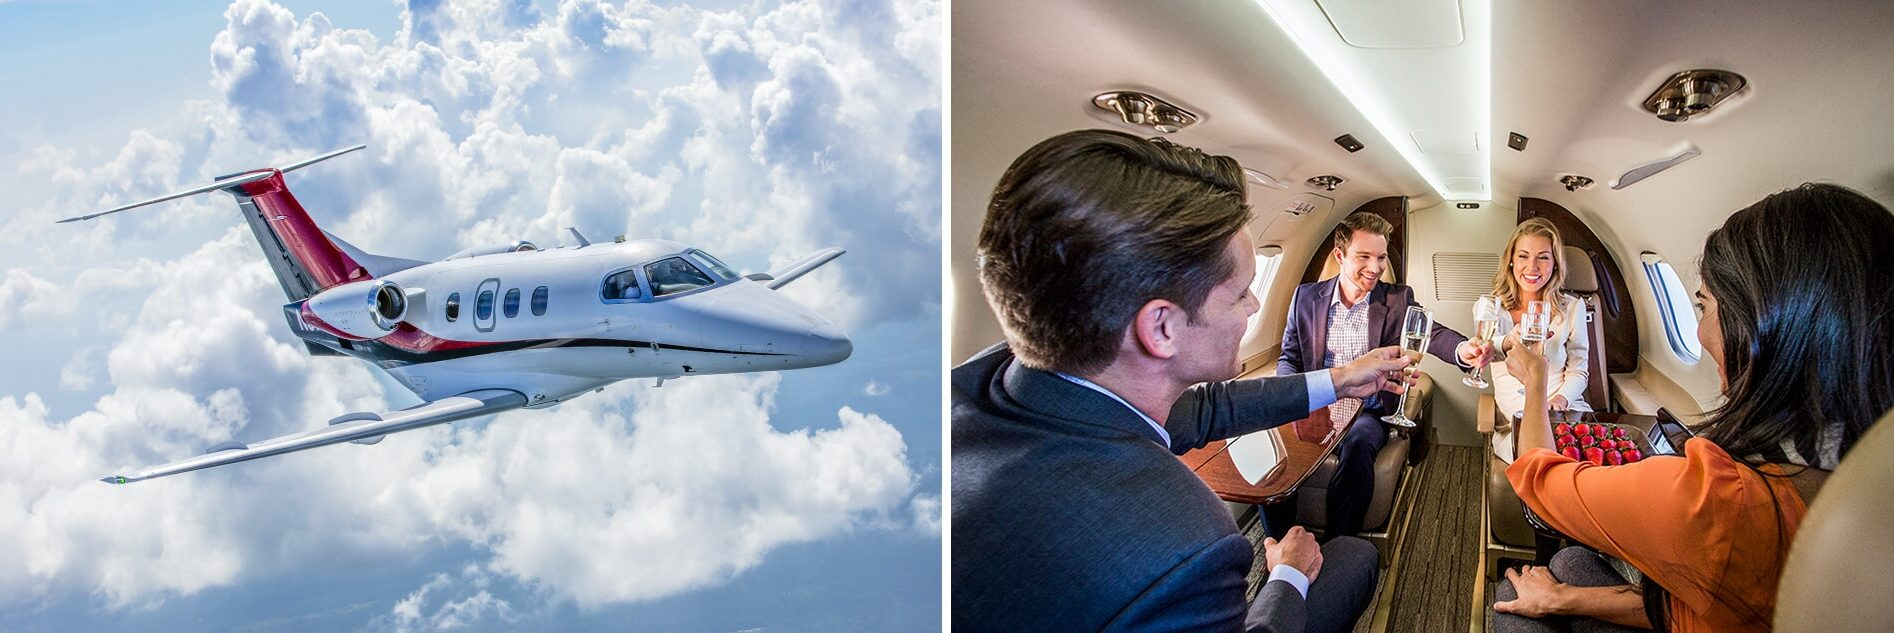 Embraer Phenom 100 Aerial and Interior with Friends Enjoying Champagne